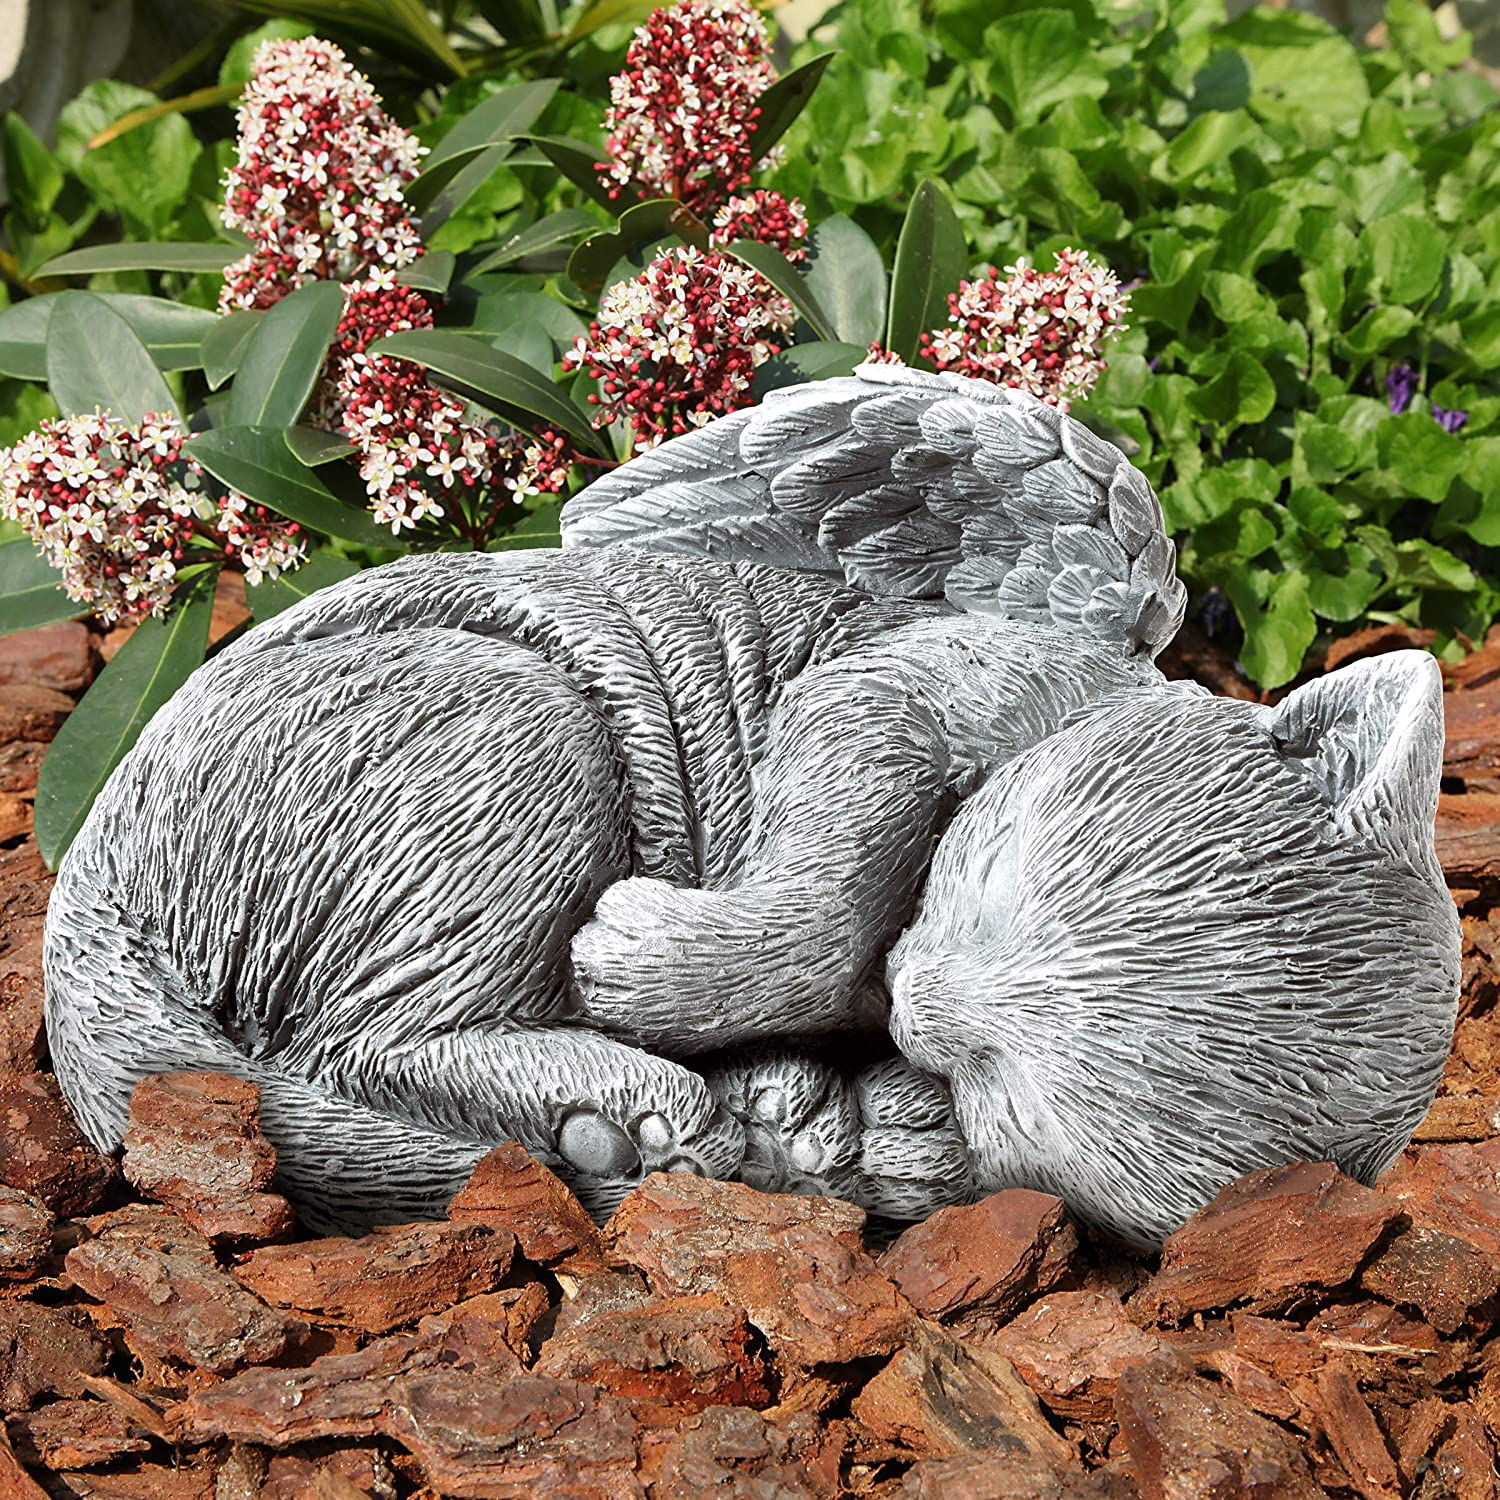 Pure Garden 50-LG1101 Memorial Statue-Sleeping Angel Cat Remembrance Keepsake Sculpture Grave Marker Stone Figurine to Honor a Cherished Pet